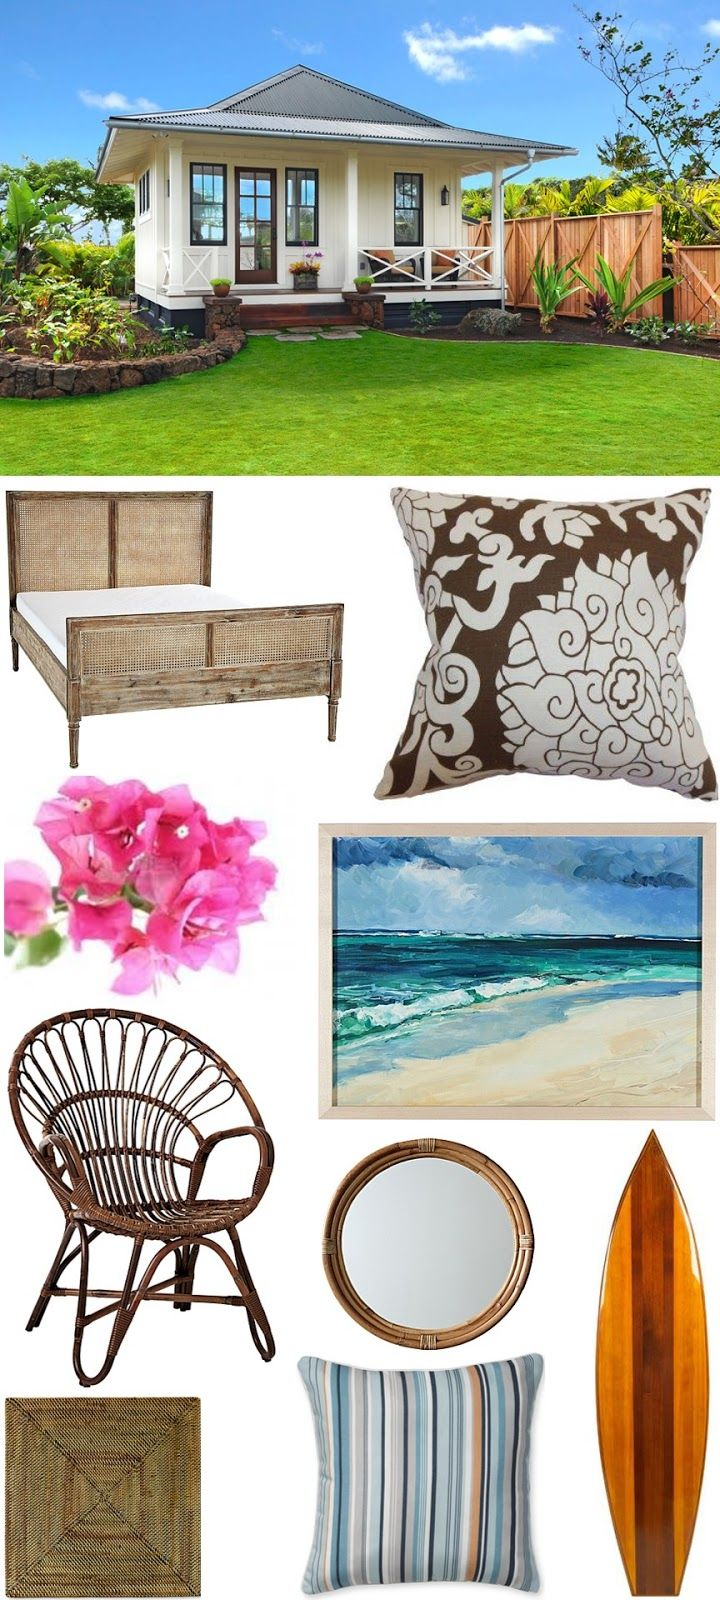 Get this CHIC COASTAL LIVING Hawaiian Beach House Look with our Harbour Cane Bed, Hennie Chair, Oceanic Artwork, and Montara Mirror.